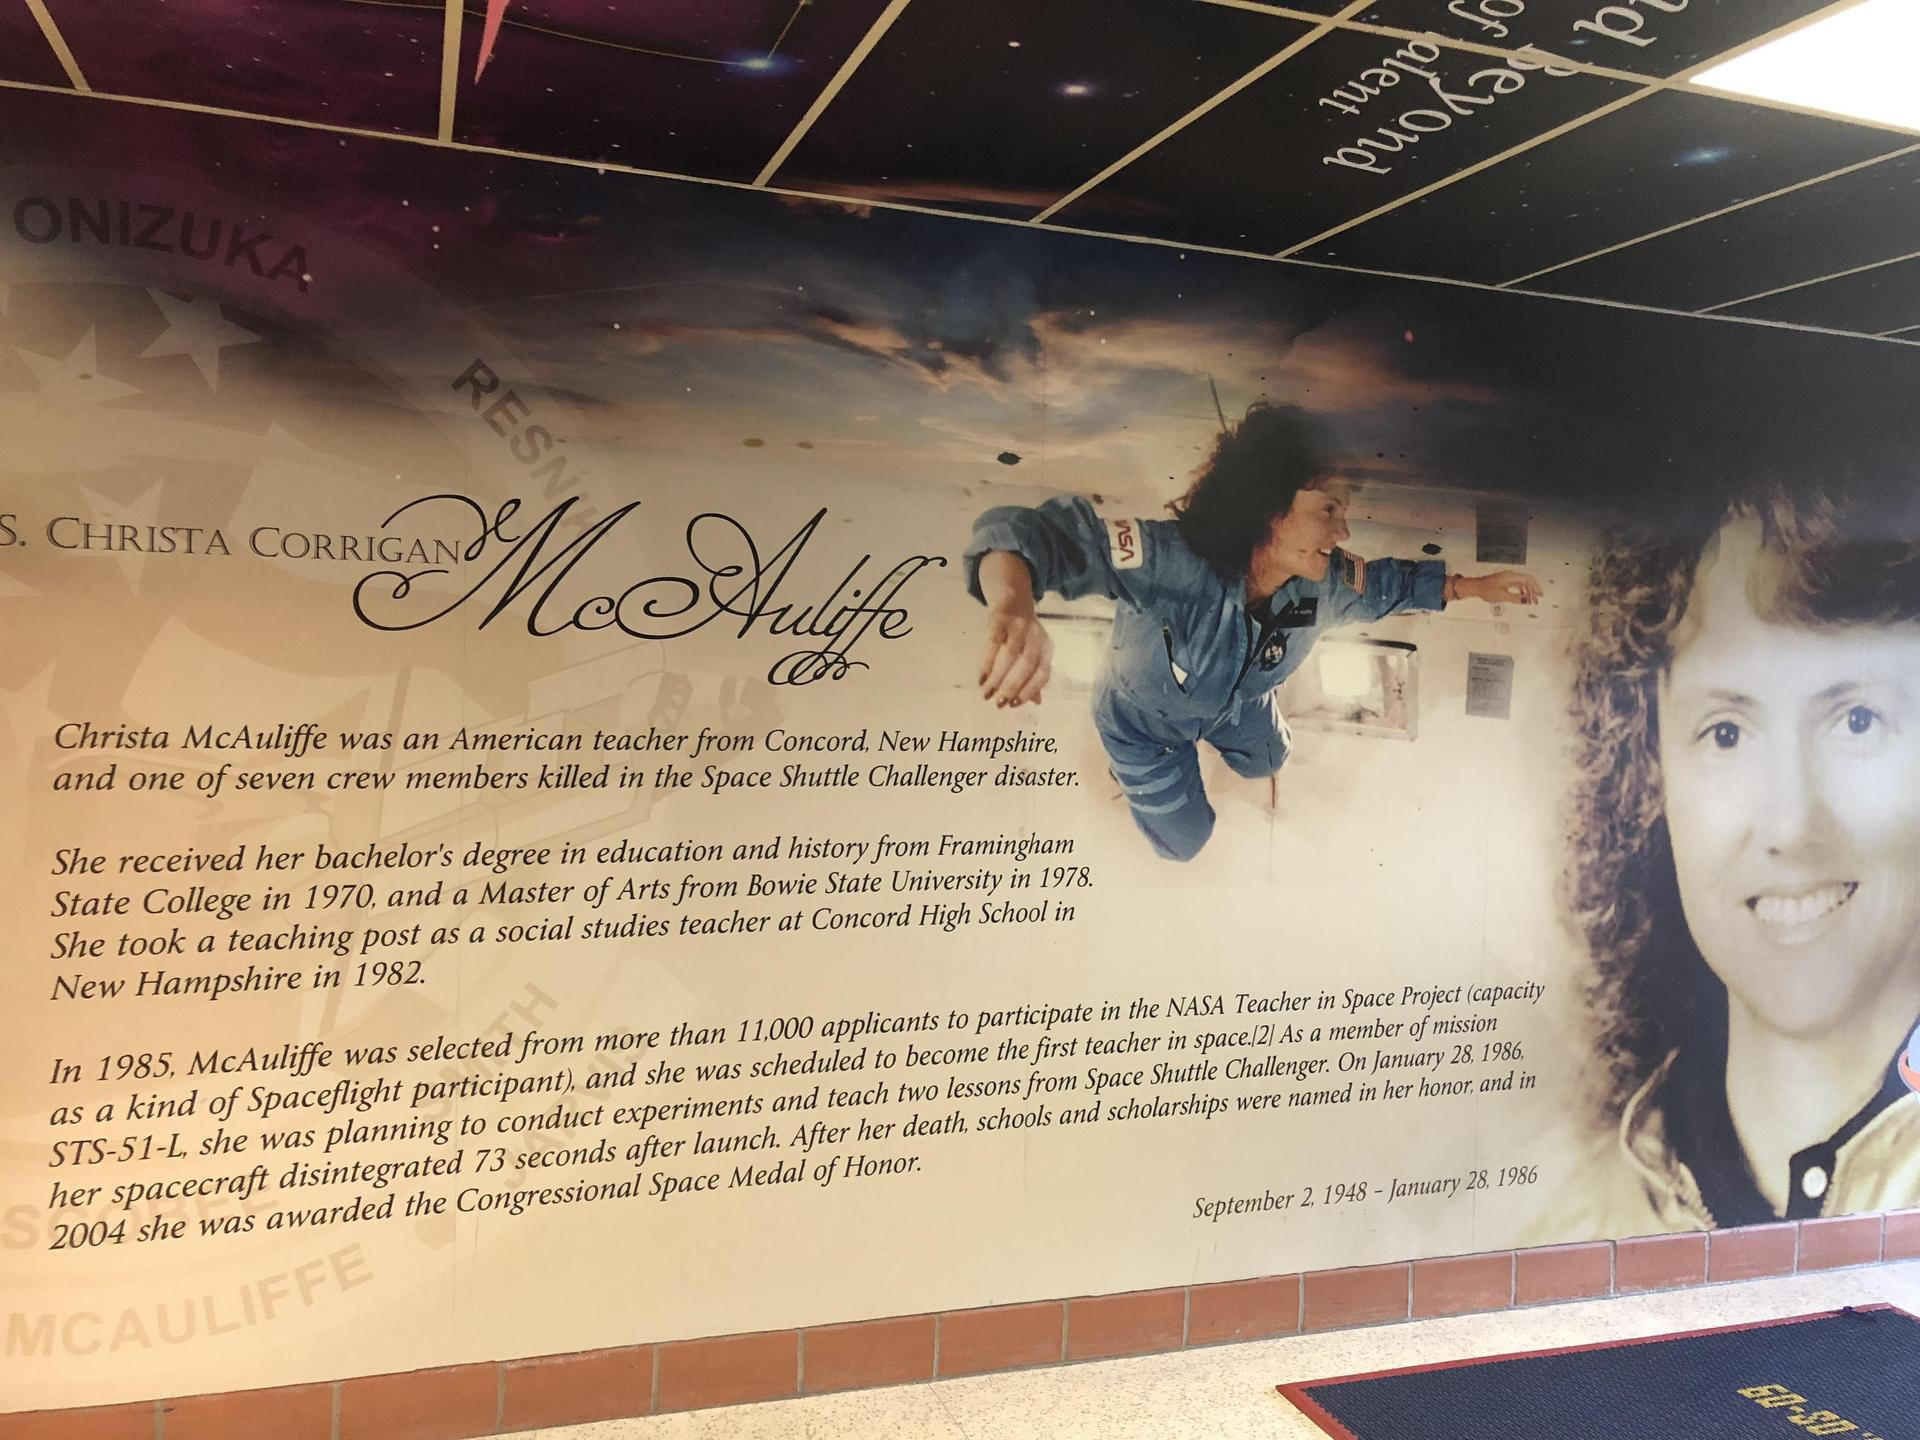 Story of Christa McAuliffe at entrance of school.